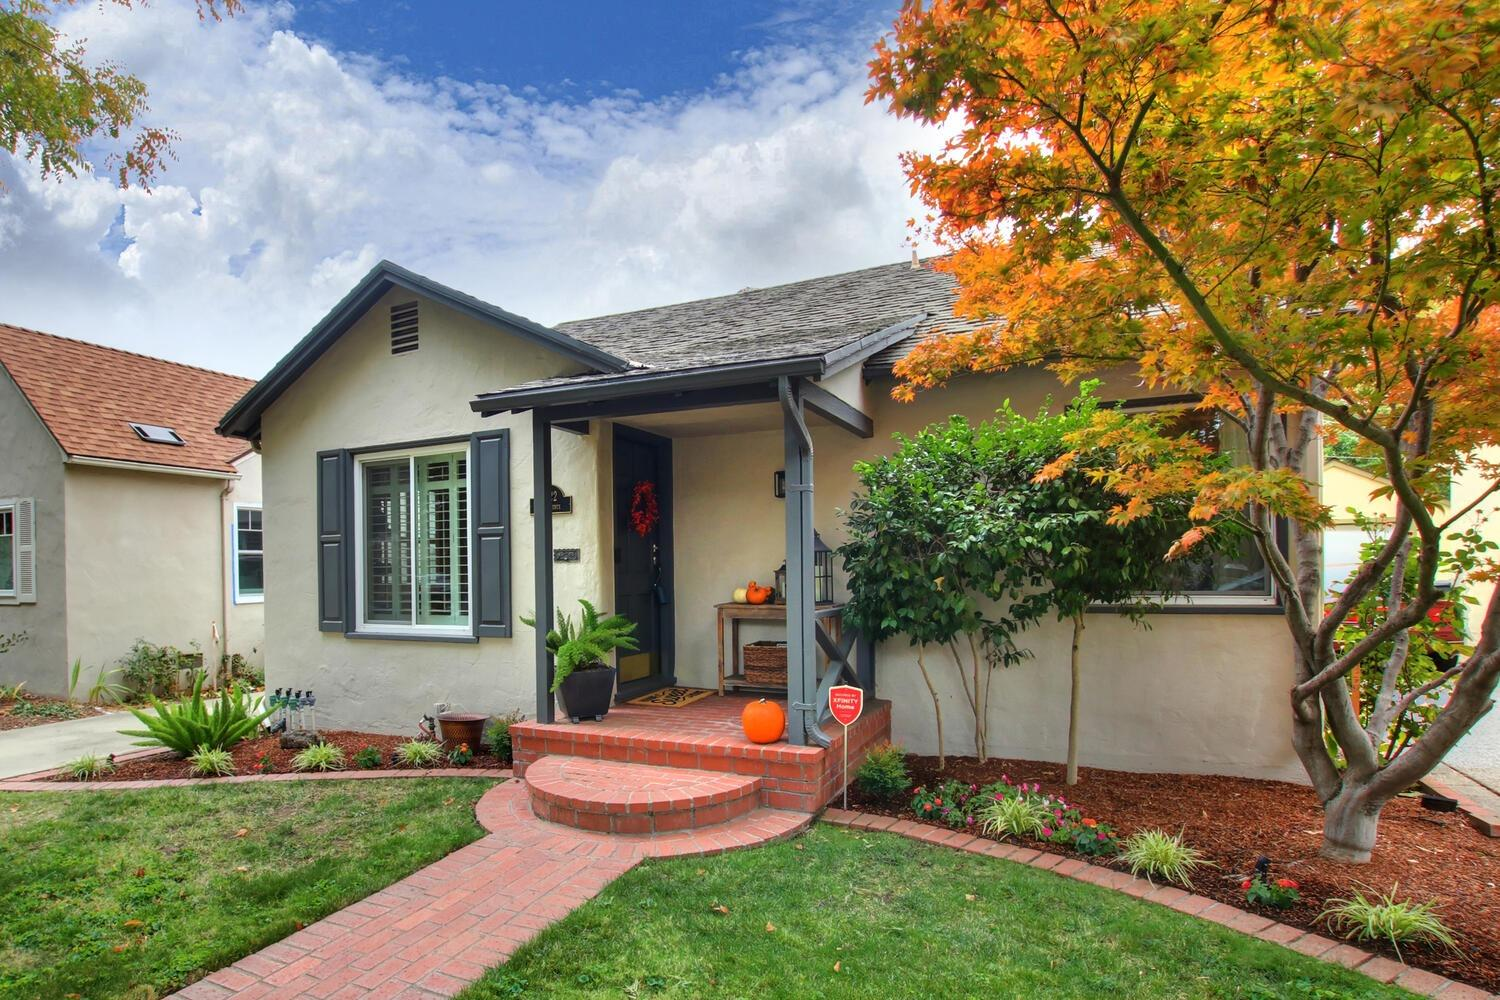 BEAUTIFUL LAND PARK COTTAGE IN FANTASTIC LOCATION!! This enchanting home is close to some of the bes